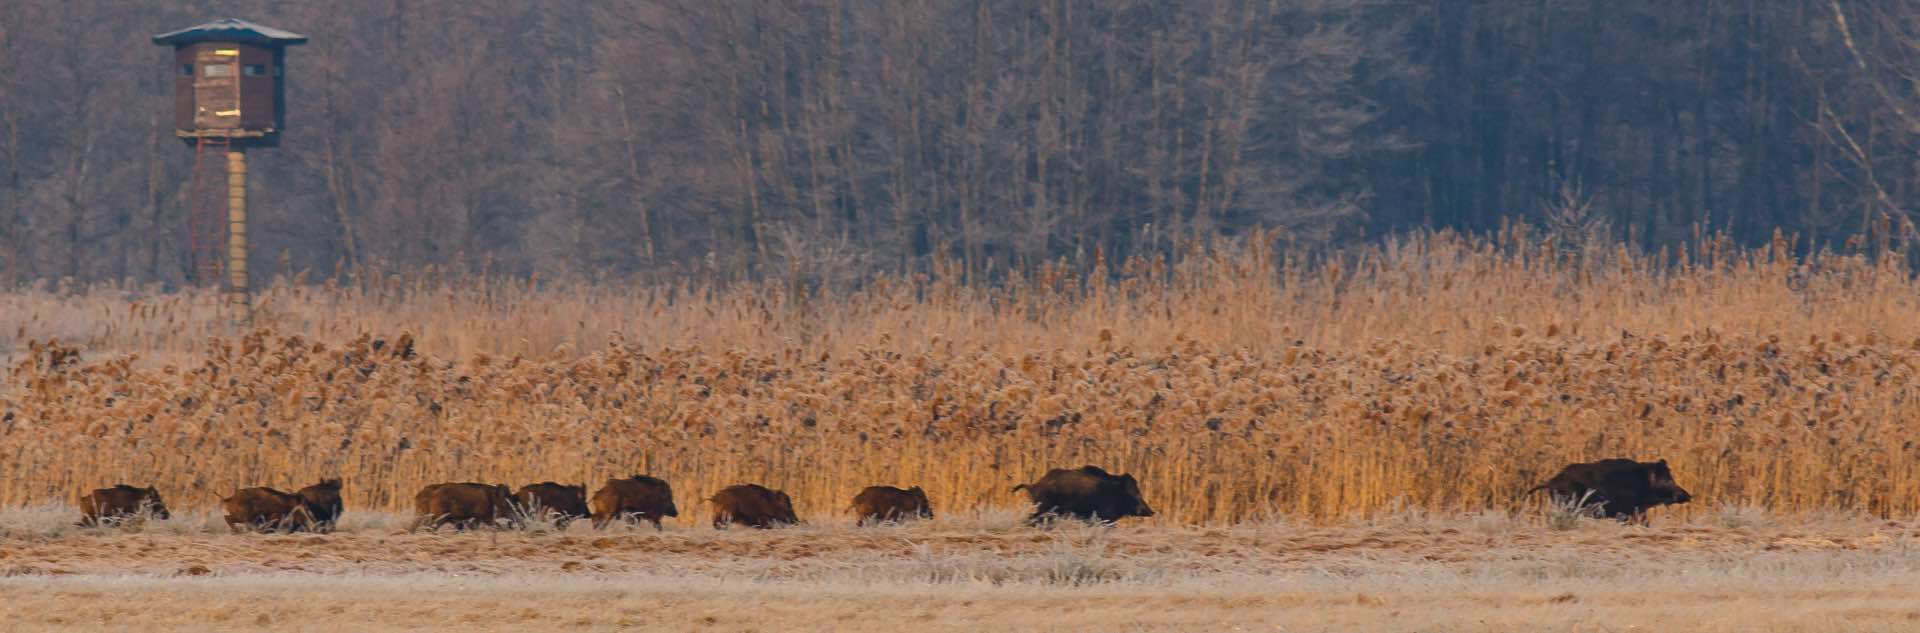 Driven wild boar shooting in Europe, control must be undertaken to avoid damage to farm crops and co